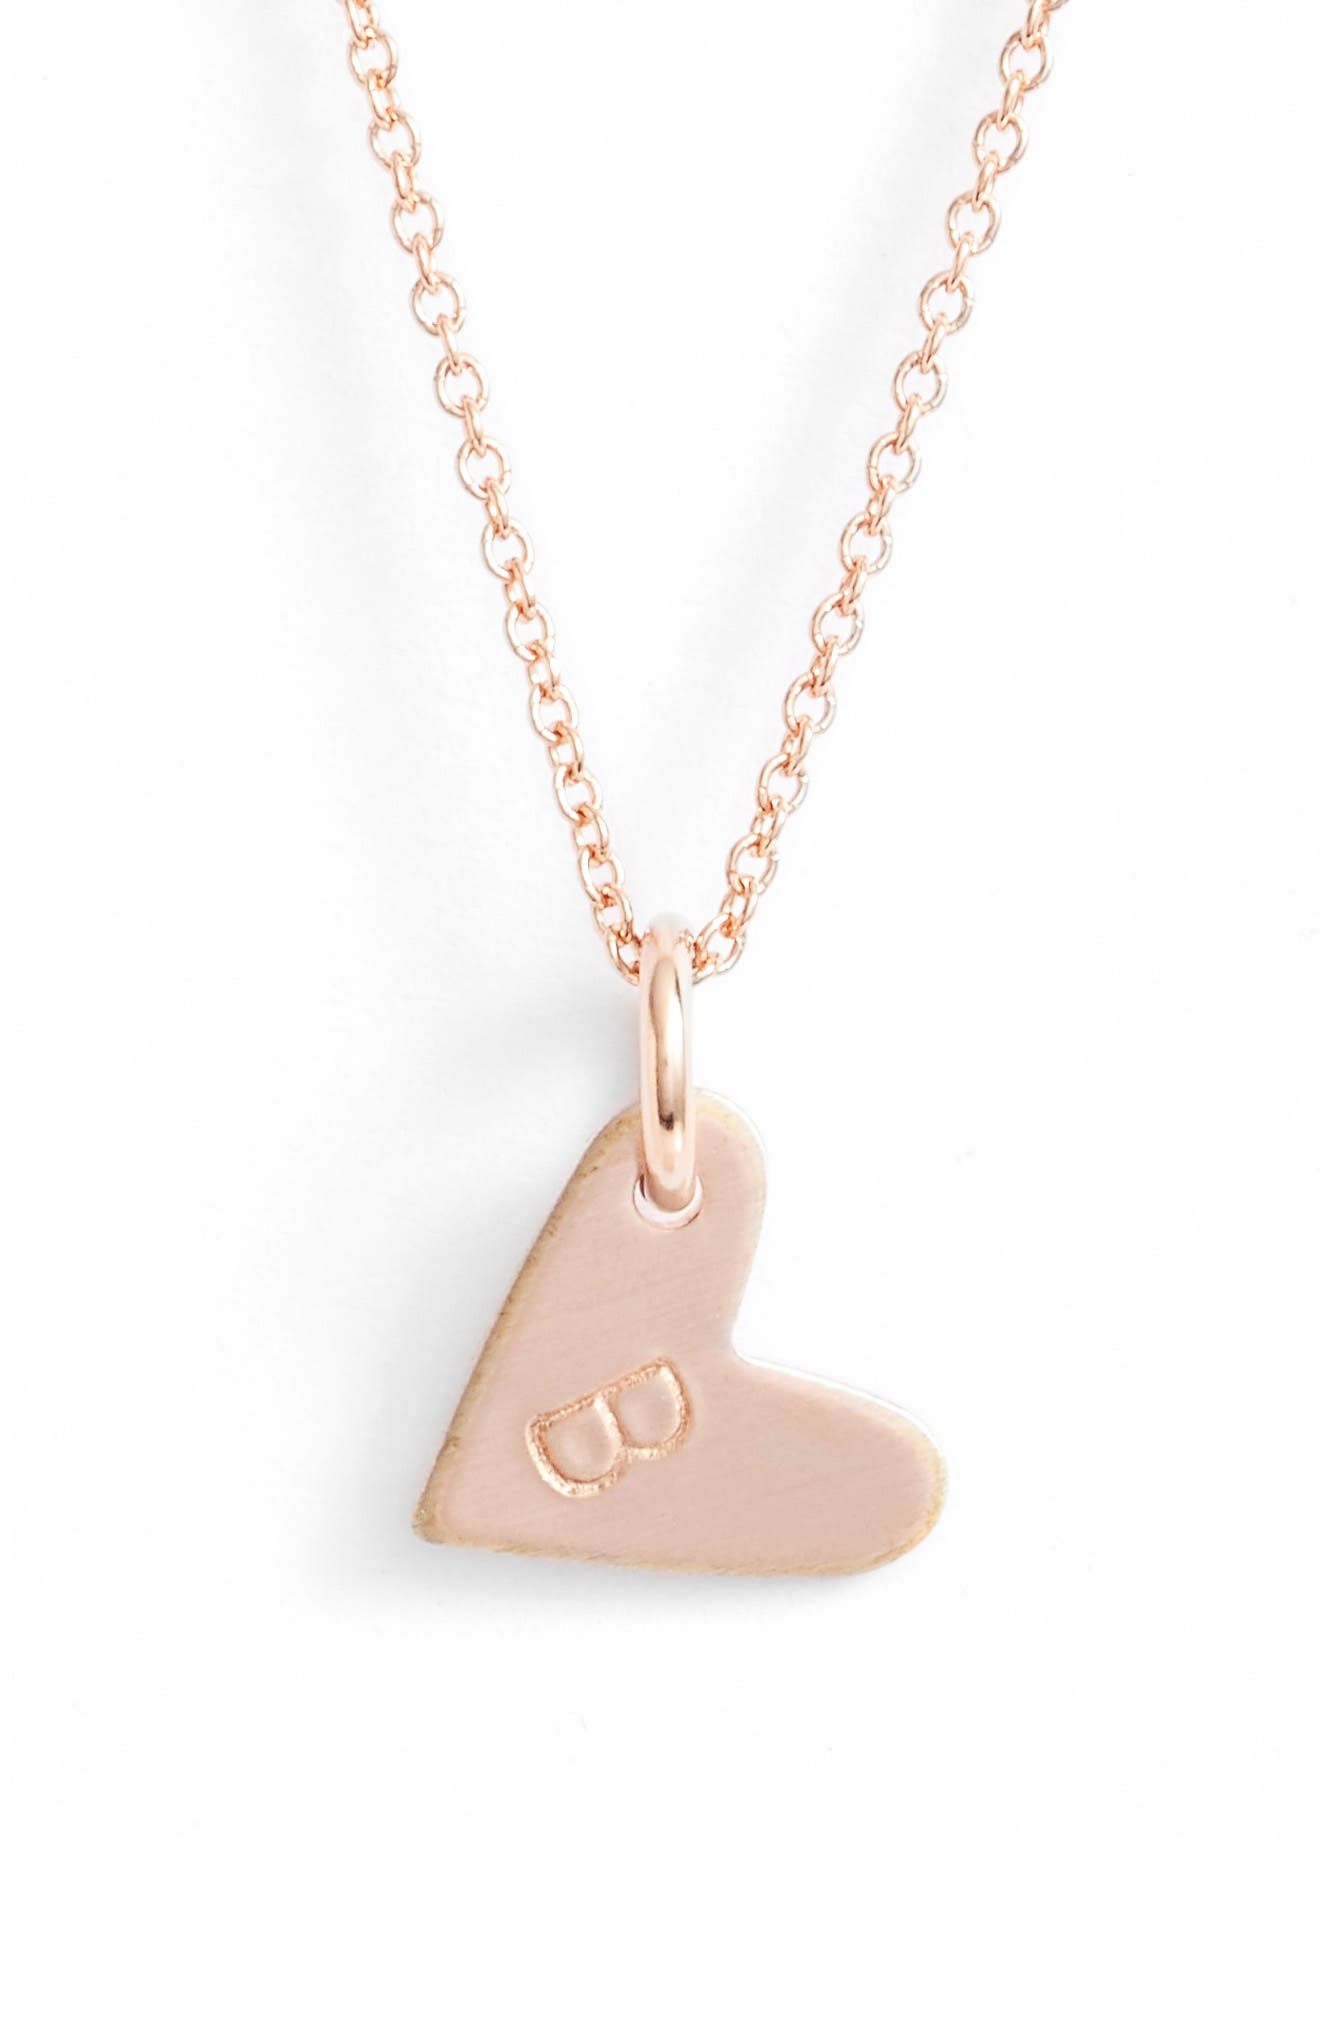 From humble beginnings to a fully staffed warehouse in Bend, Oregon, Nashelle remains true to its original purpose-handmade jewelry crafted with love and intention. A hand-stamped initial details a charming heart pendant that hangs from a chain-link necklace. Style Name: Nashelle Initial Heart Pendant Necklace. Style Number: 5143632. Available in stores.